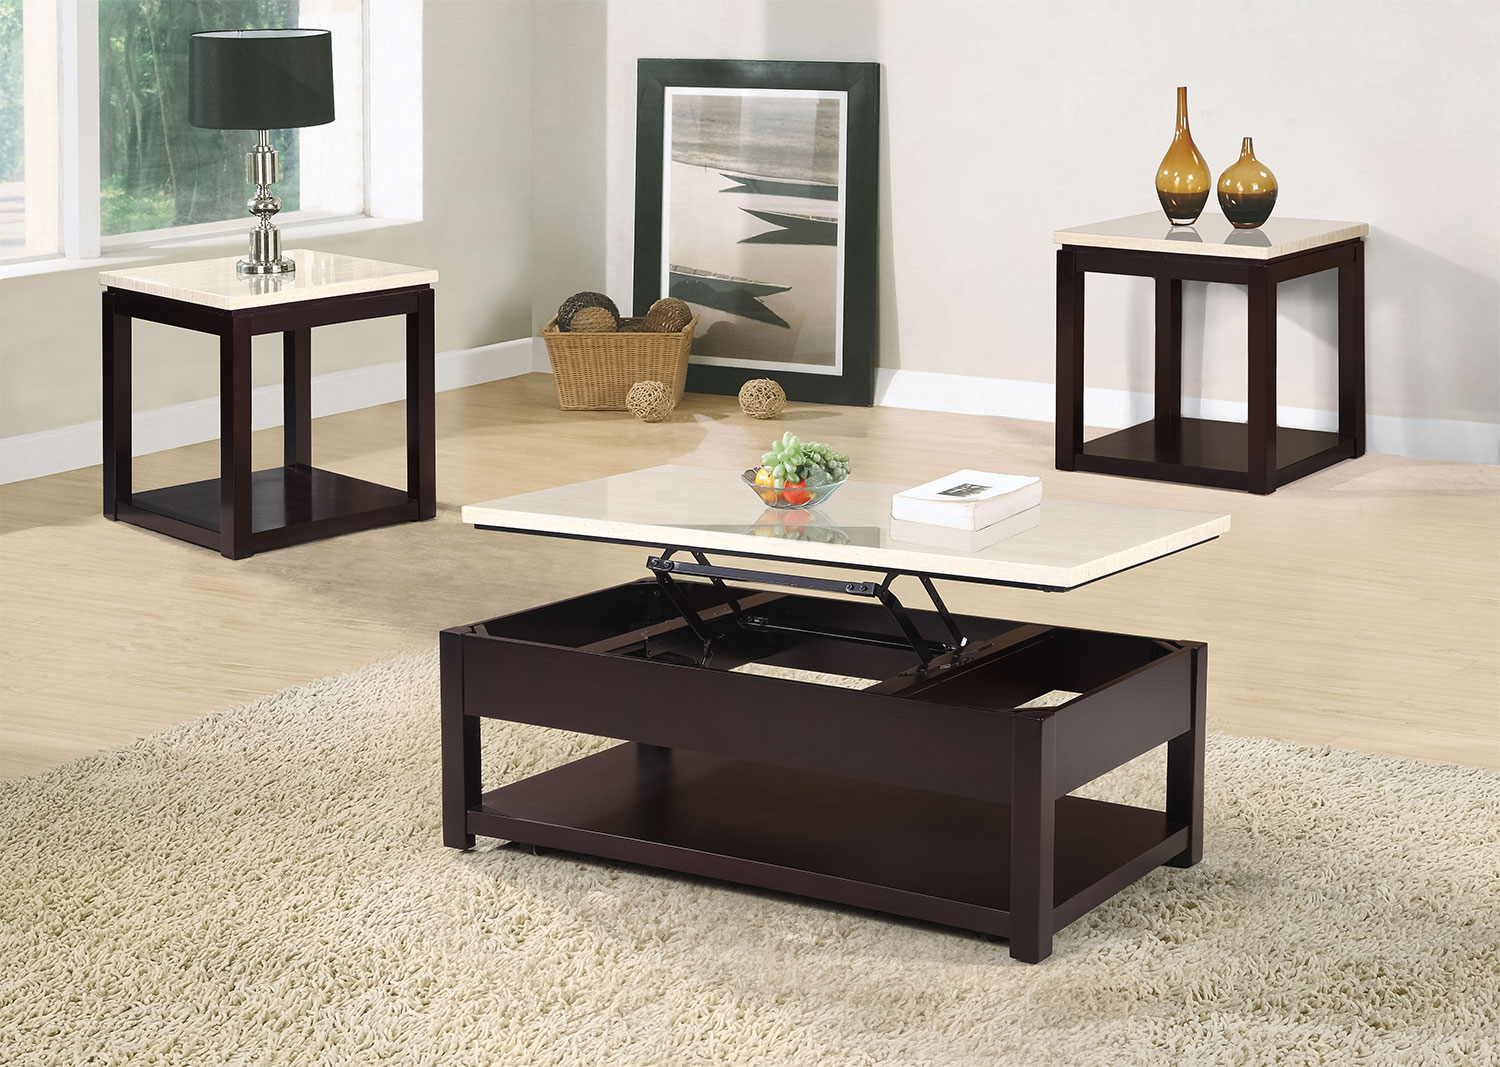 Sicily Coffee Table with LiftTop and Casters Beige The Brick